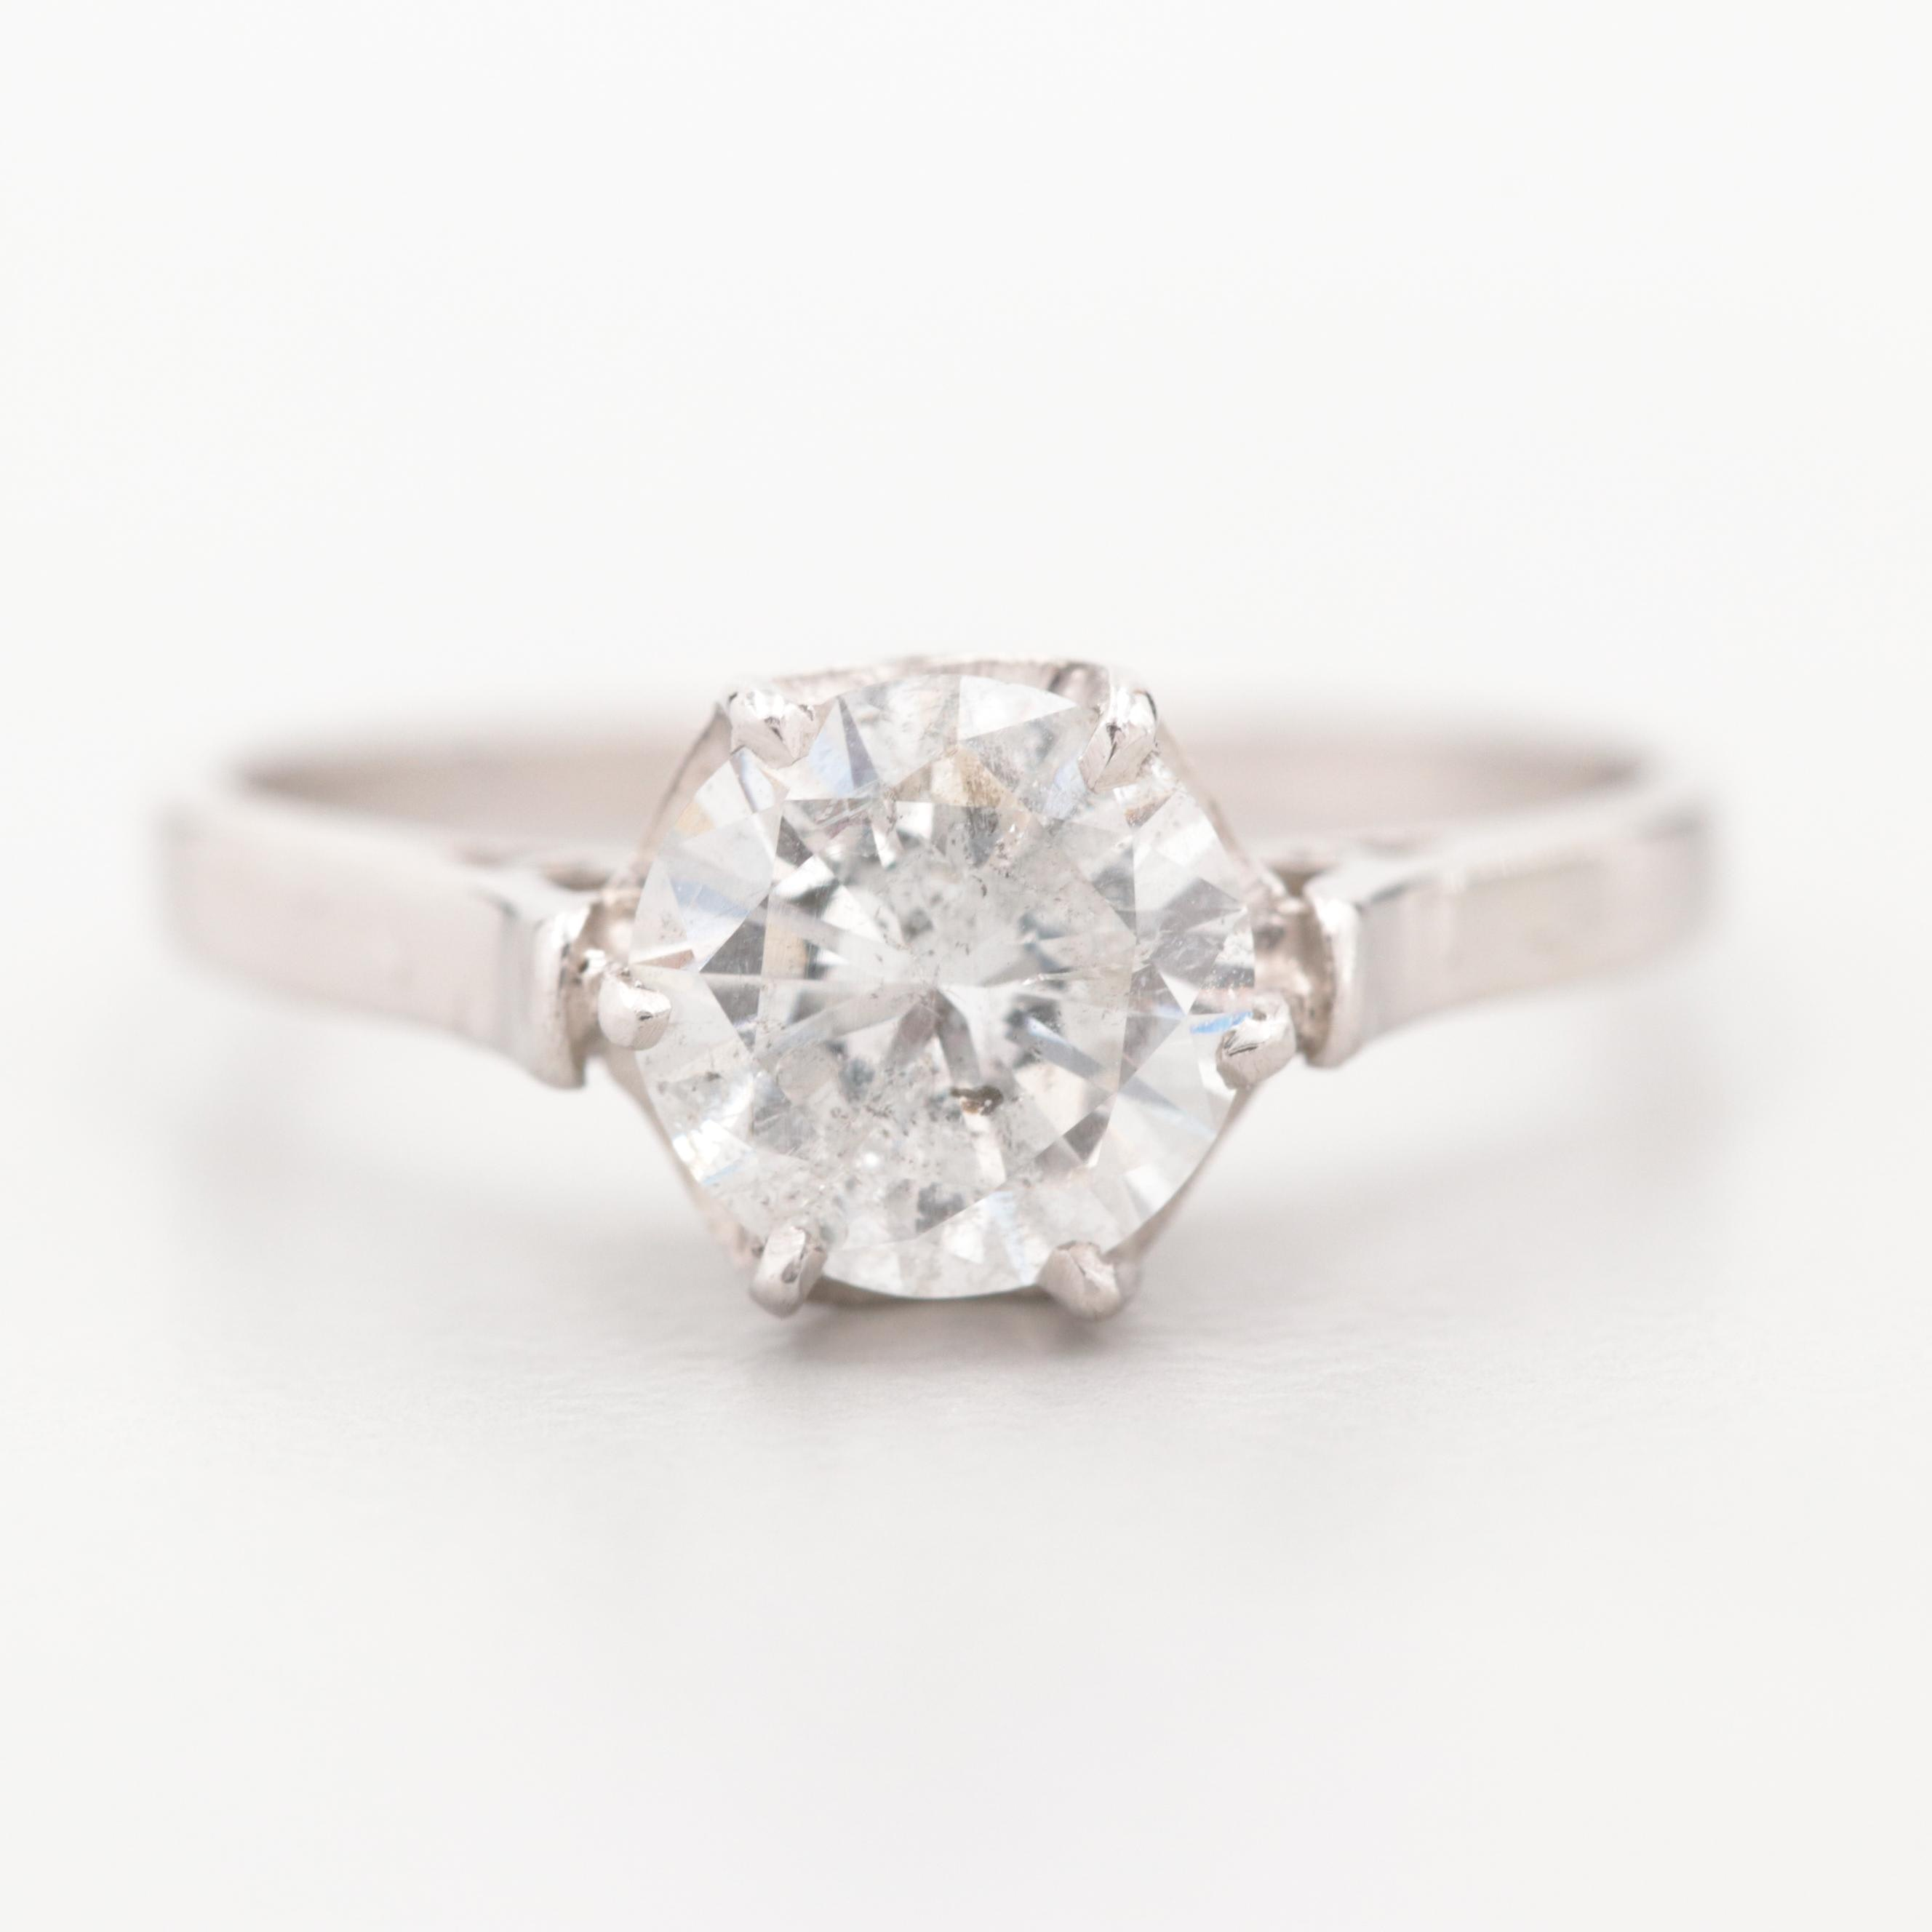 Vintage Platinum 1.20 CT Diamond Solitaire Ring